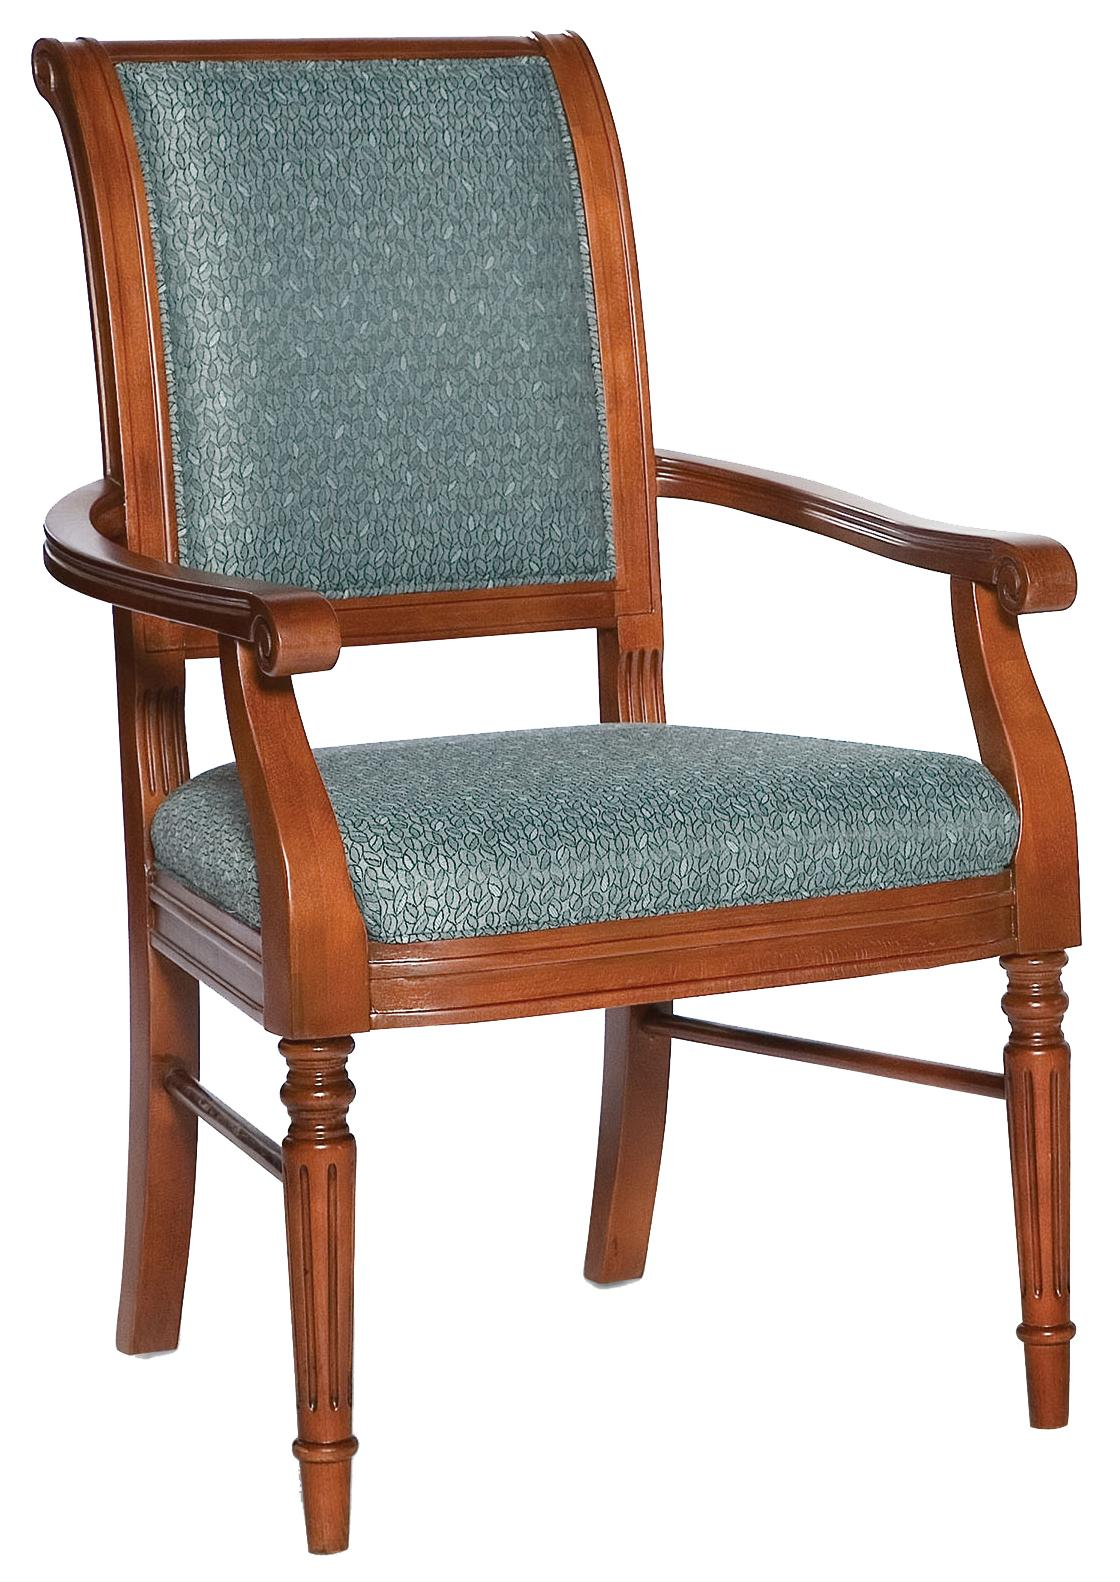 Fairfield Chairs Picture Frame Arm Chair  - Item Number: 5434-04